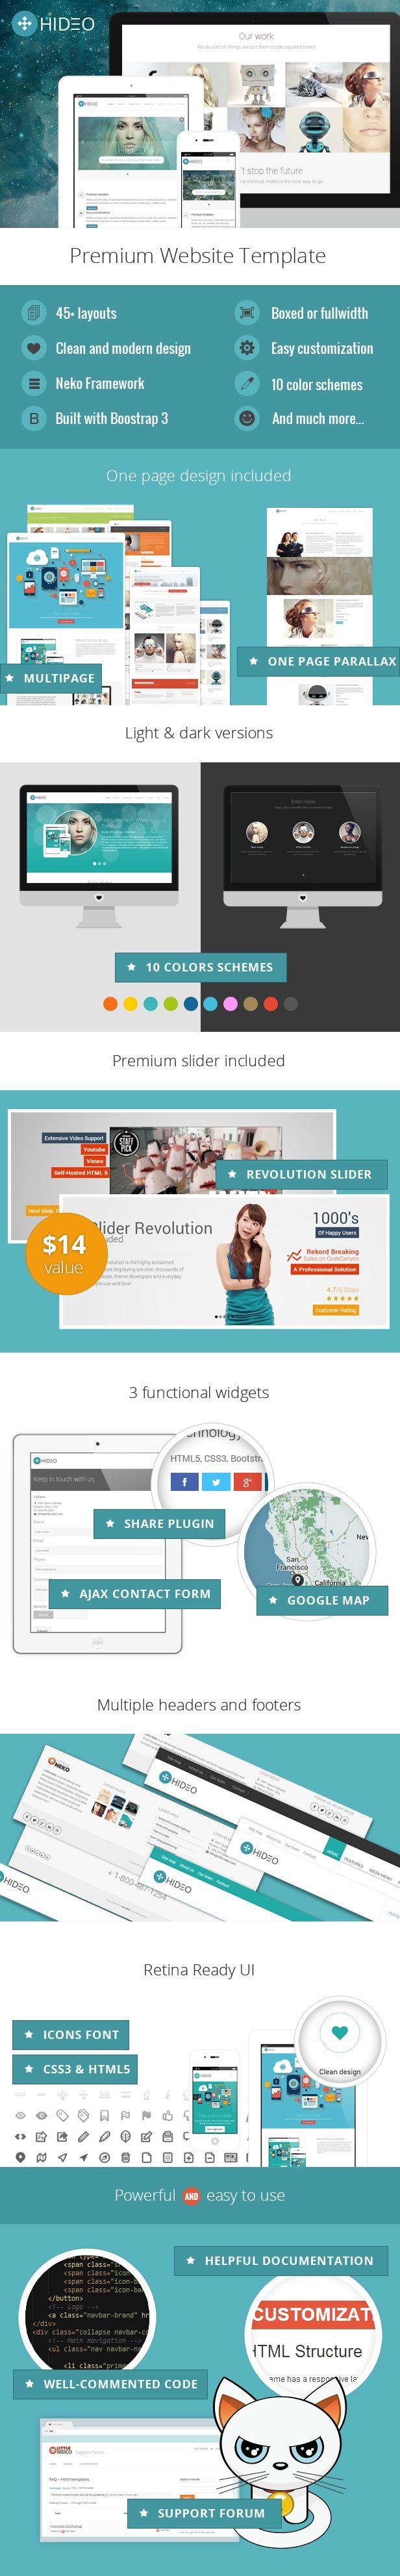 Bootstrap Website Templates Inspira  Responsive Html 5 Website Template  Modern Website And